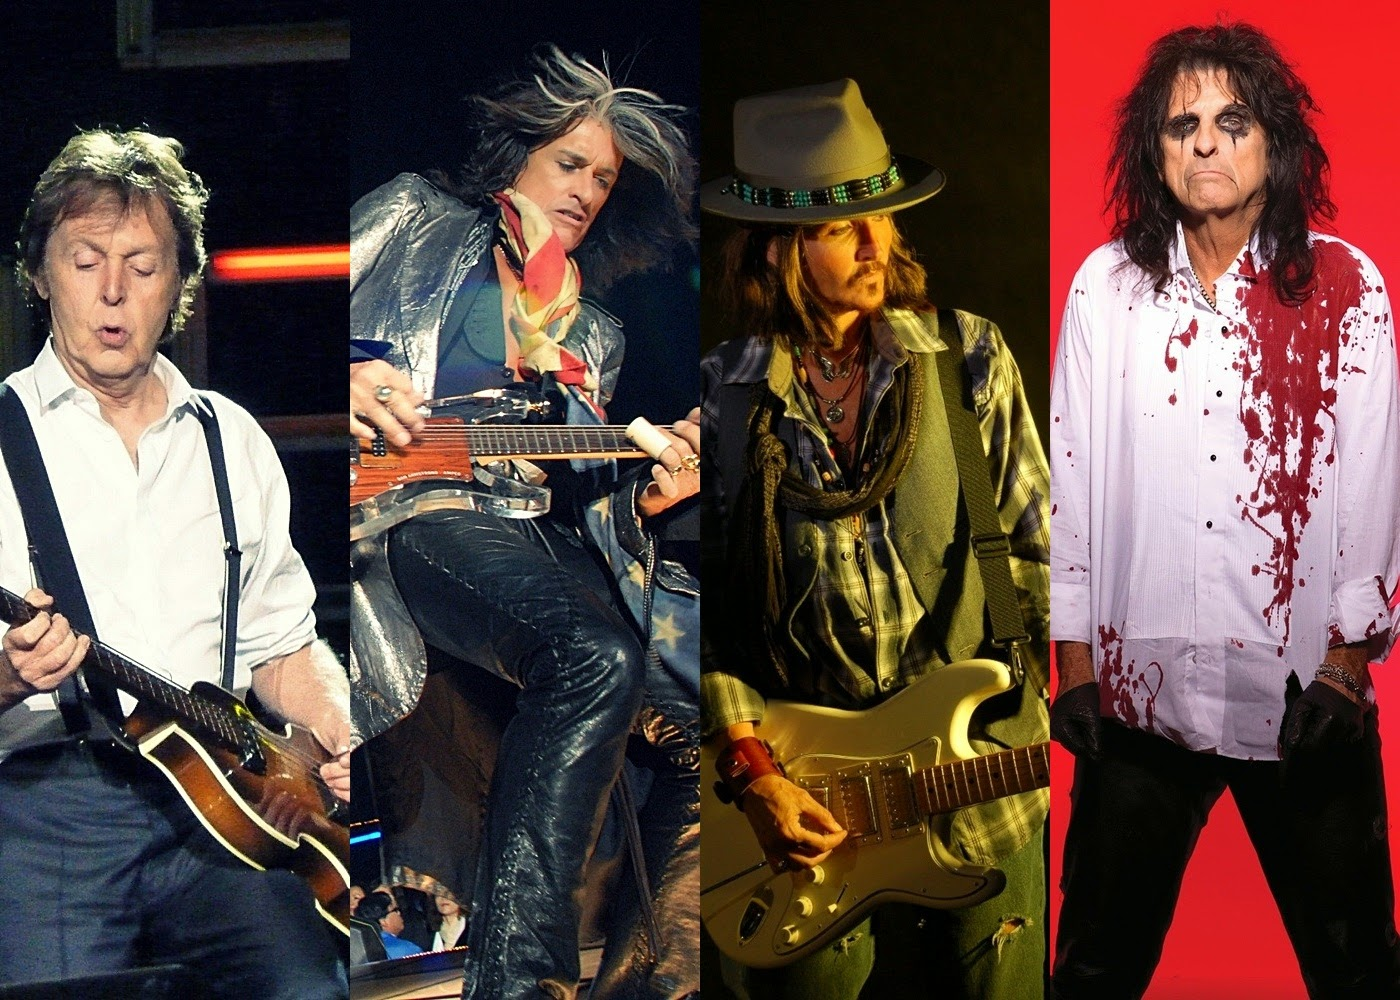 Joe Perry revela projeto com Paul McCartney, Johnny Depp e Alice Cooper